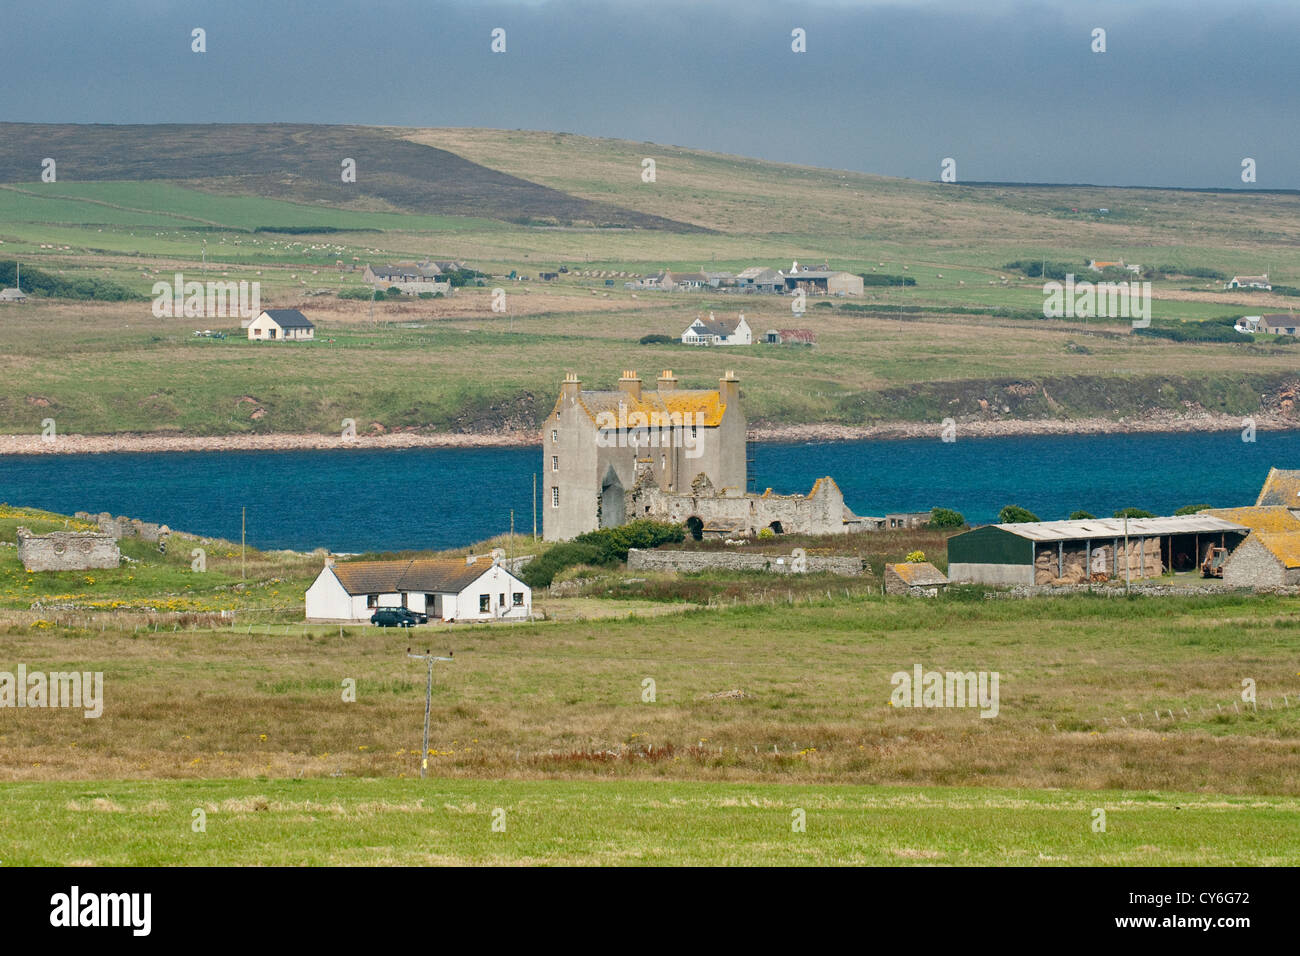 Castle on the Caithness coast, Northern Scotland - Stock Image